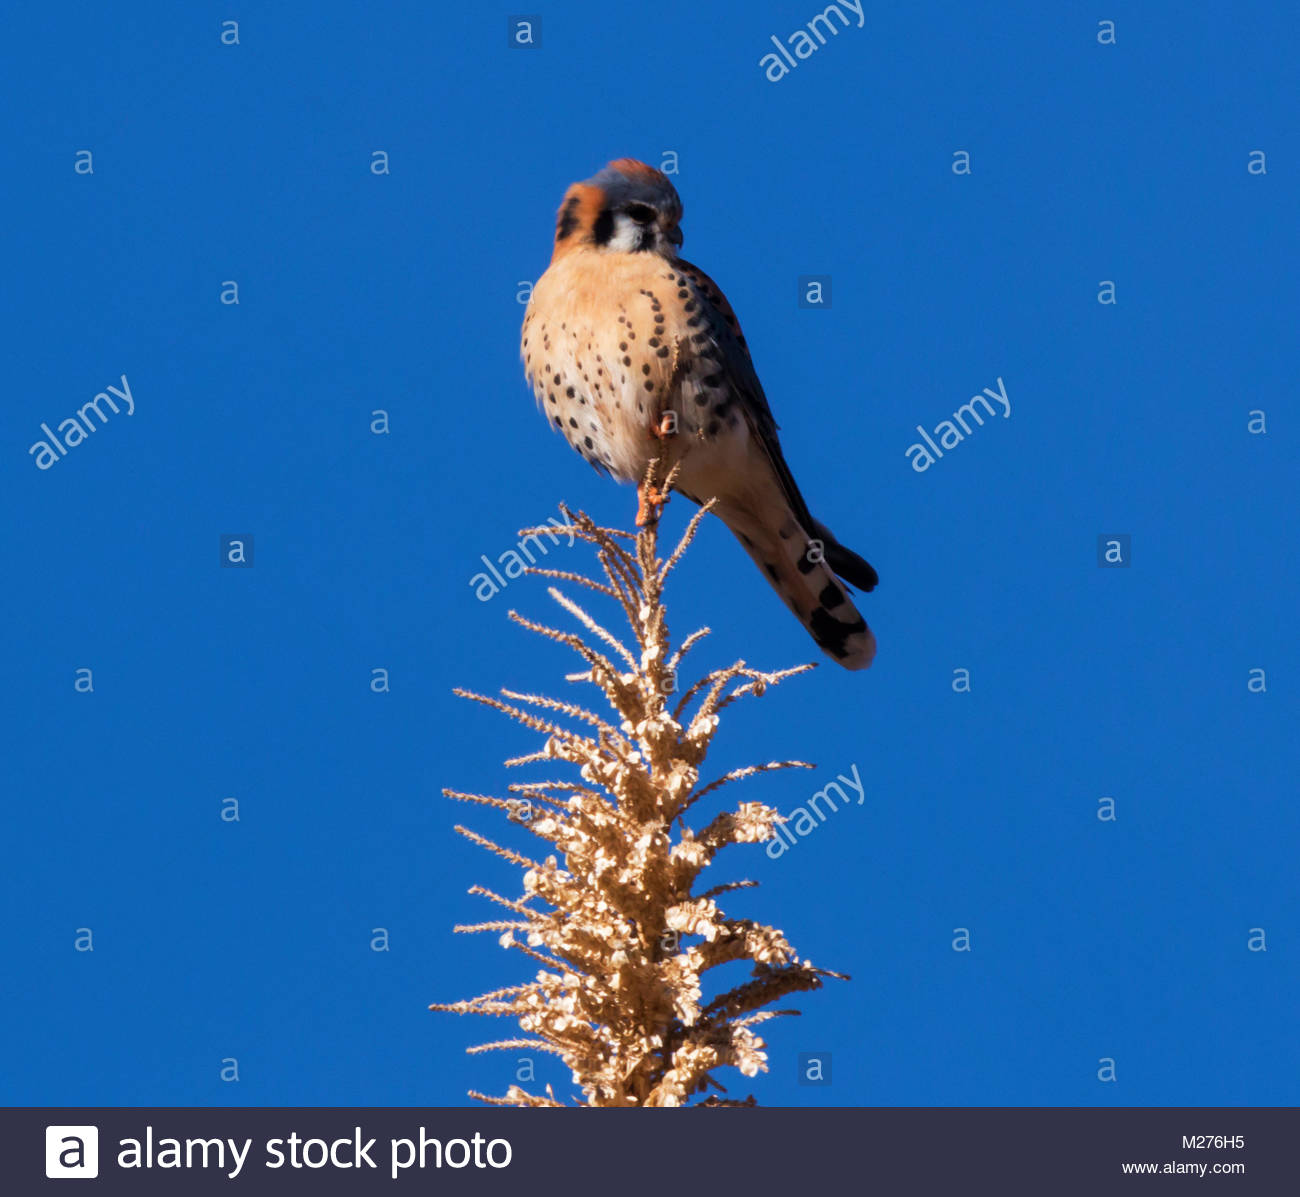 American Kestrel, Falco sparverius, Sparrow Hawk, perched on sotol stalk in New Mexico, USA - Stock Image